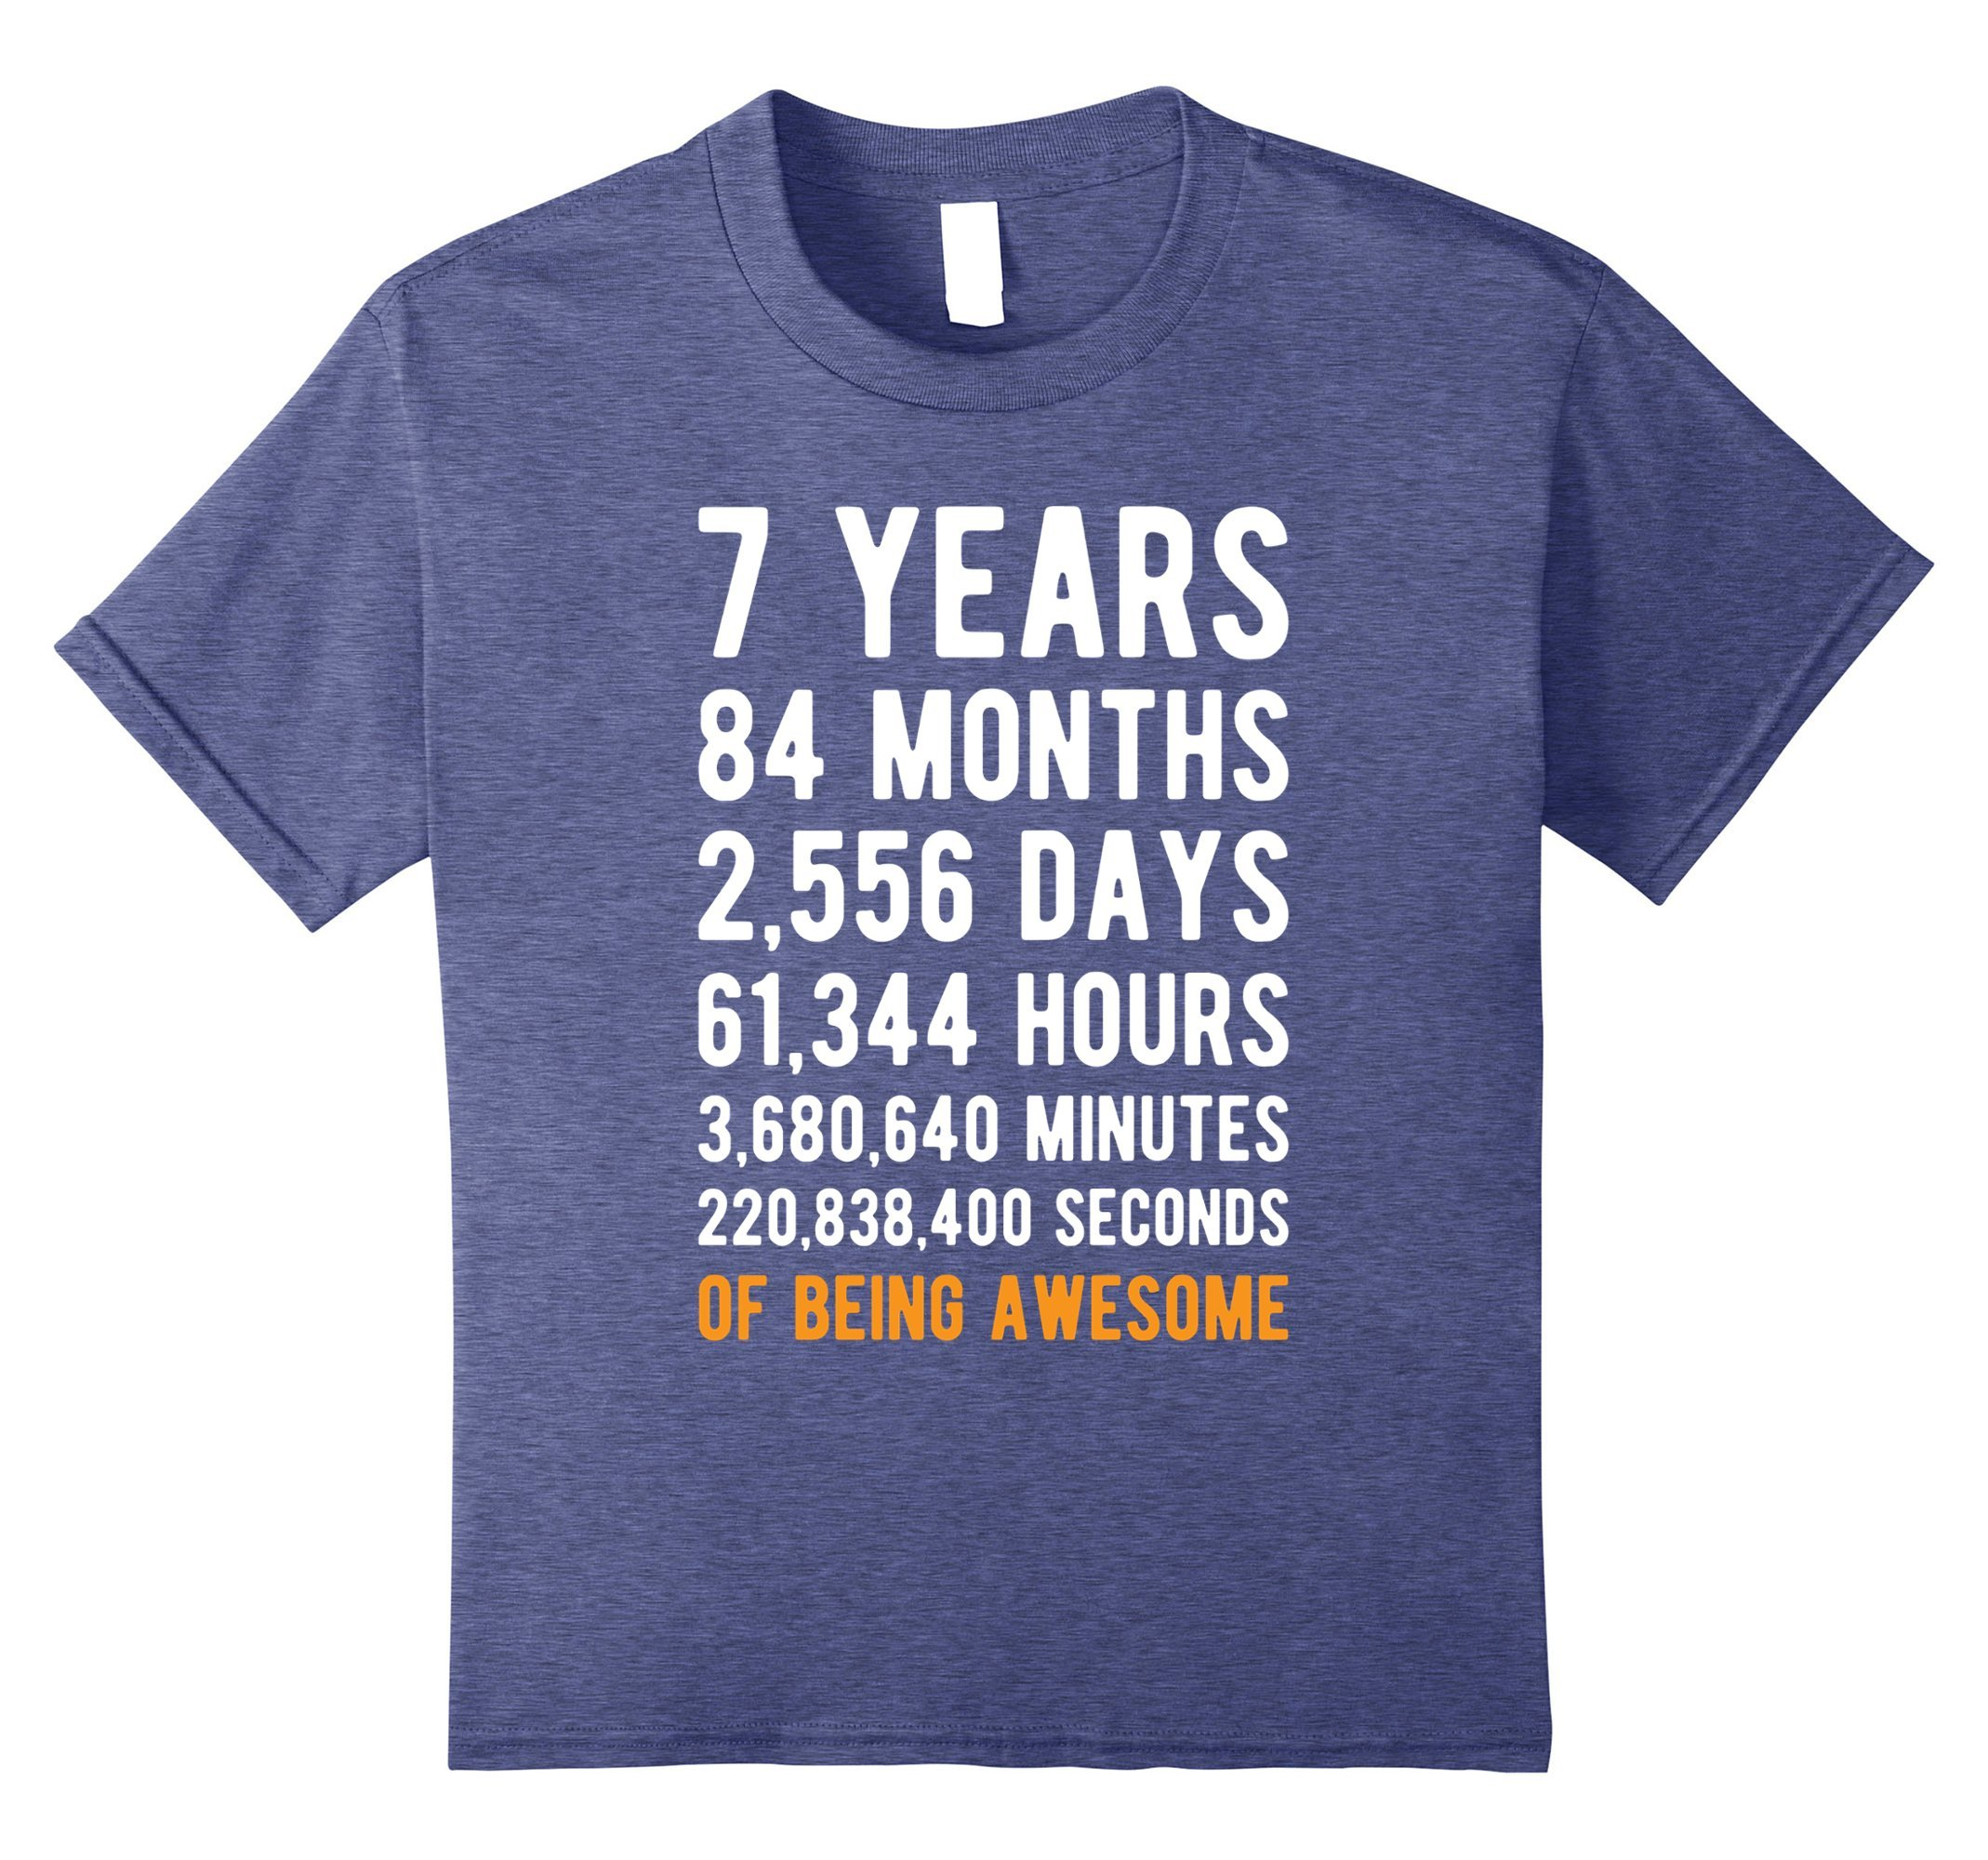 Kids 7th Birthday Gift T Shirt 7 Years Old Being Awesome Tee 8 Heather Blue by Birthday Countdown Apparel (Image #1)